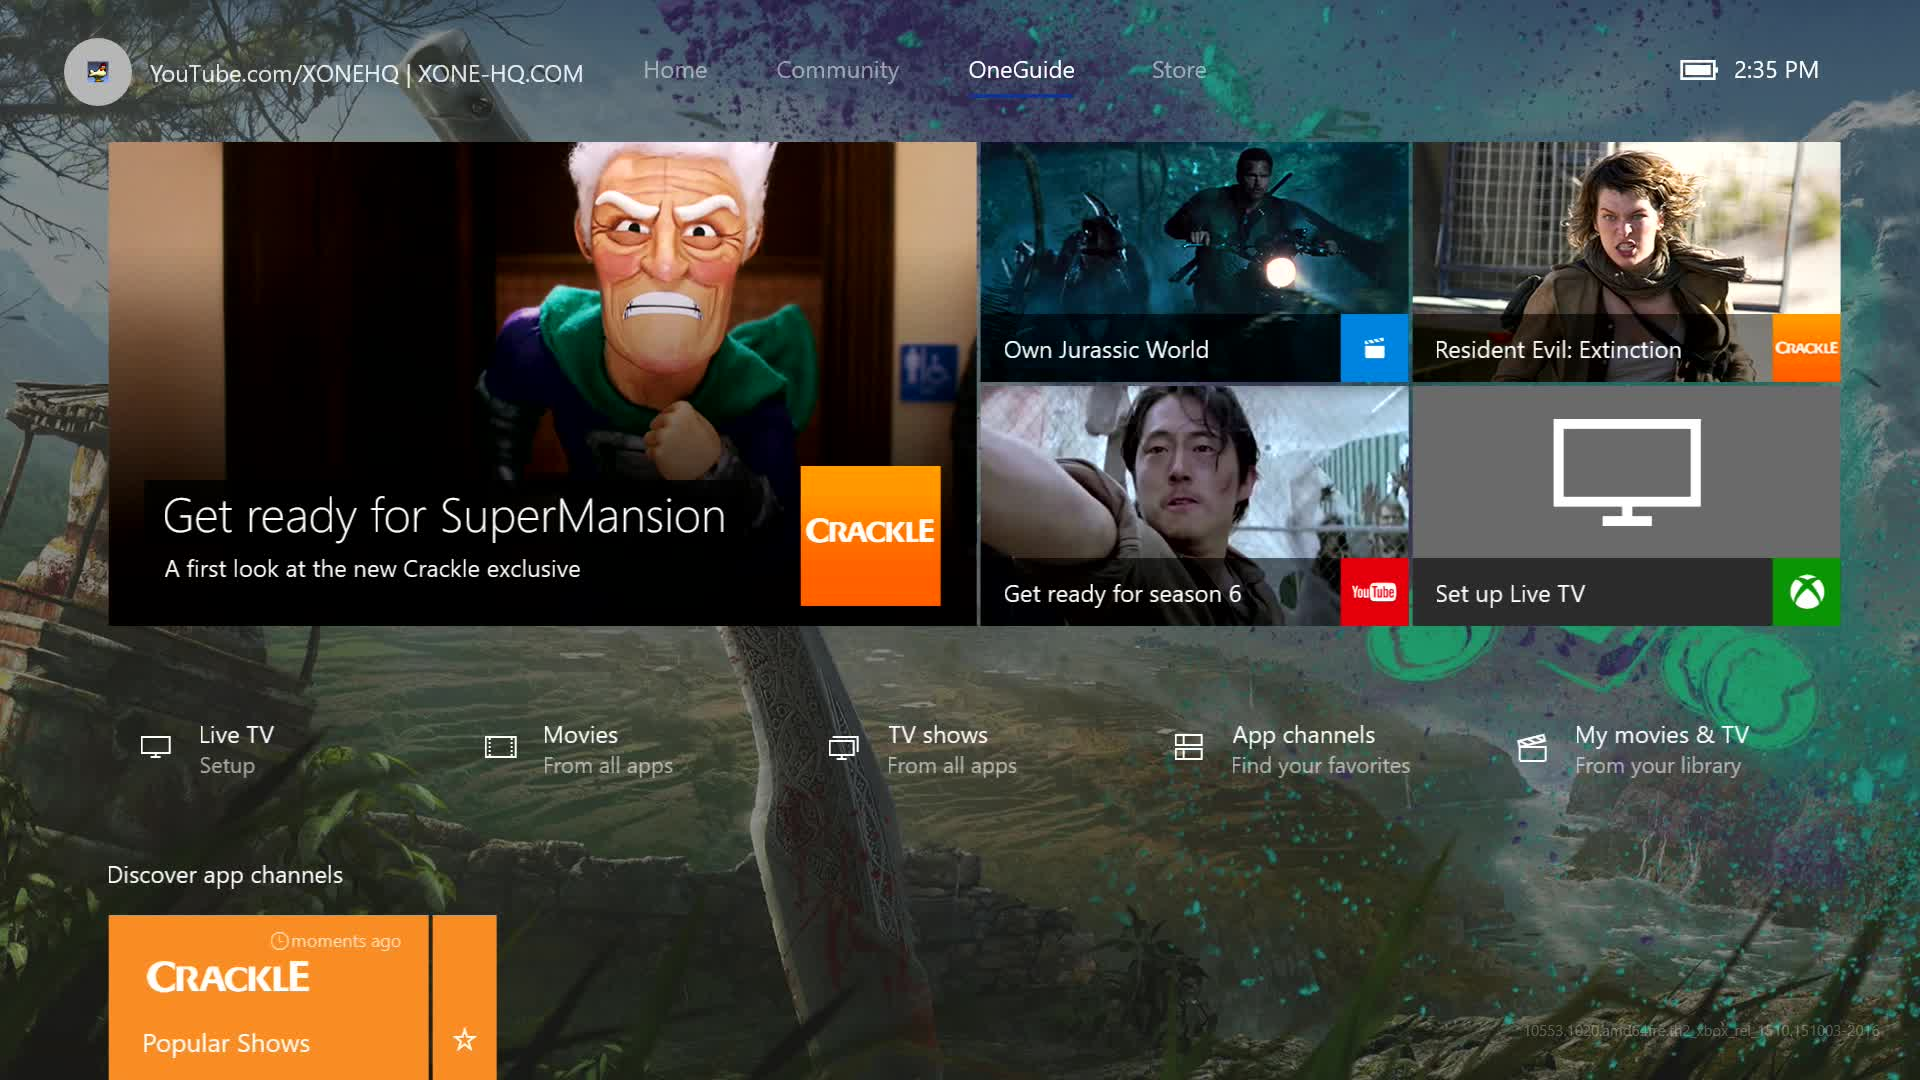 The New Xbox One Experience Launches Nov. 12 - Over 100 Xbox 360 Games Playable - XboxOne-HQ.COM